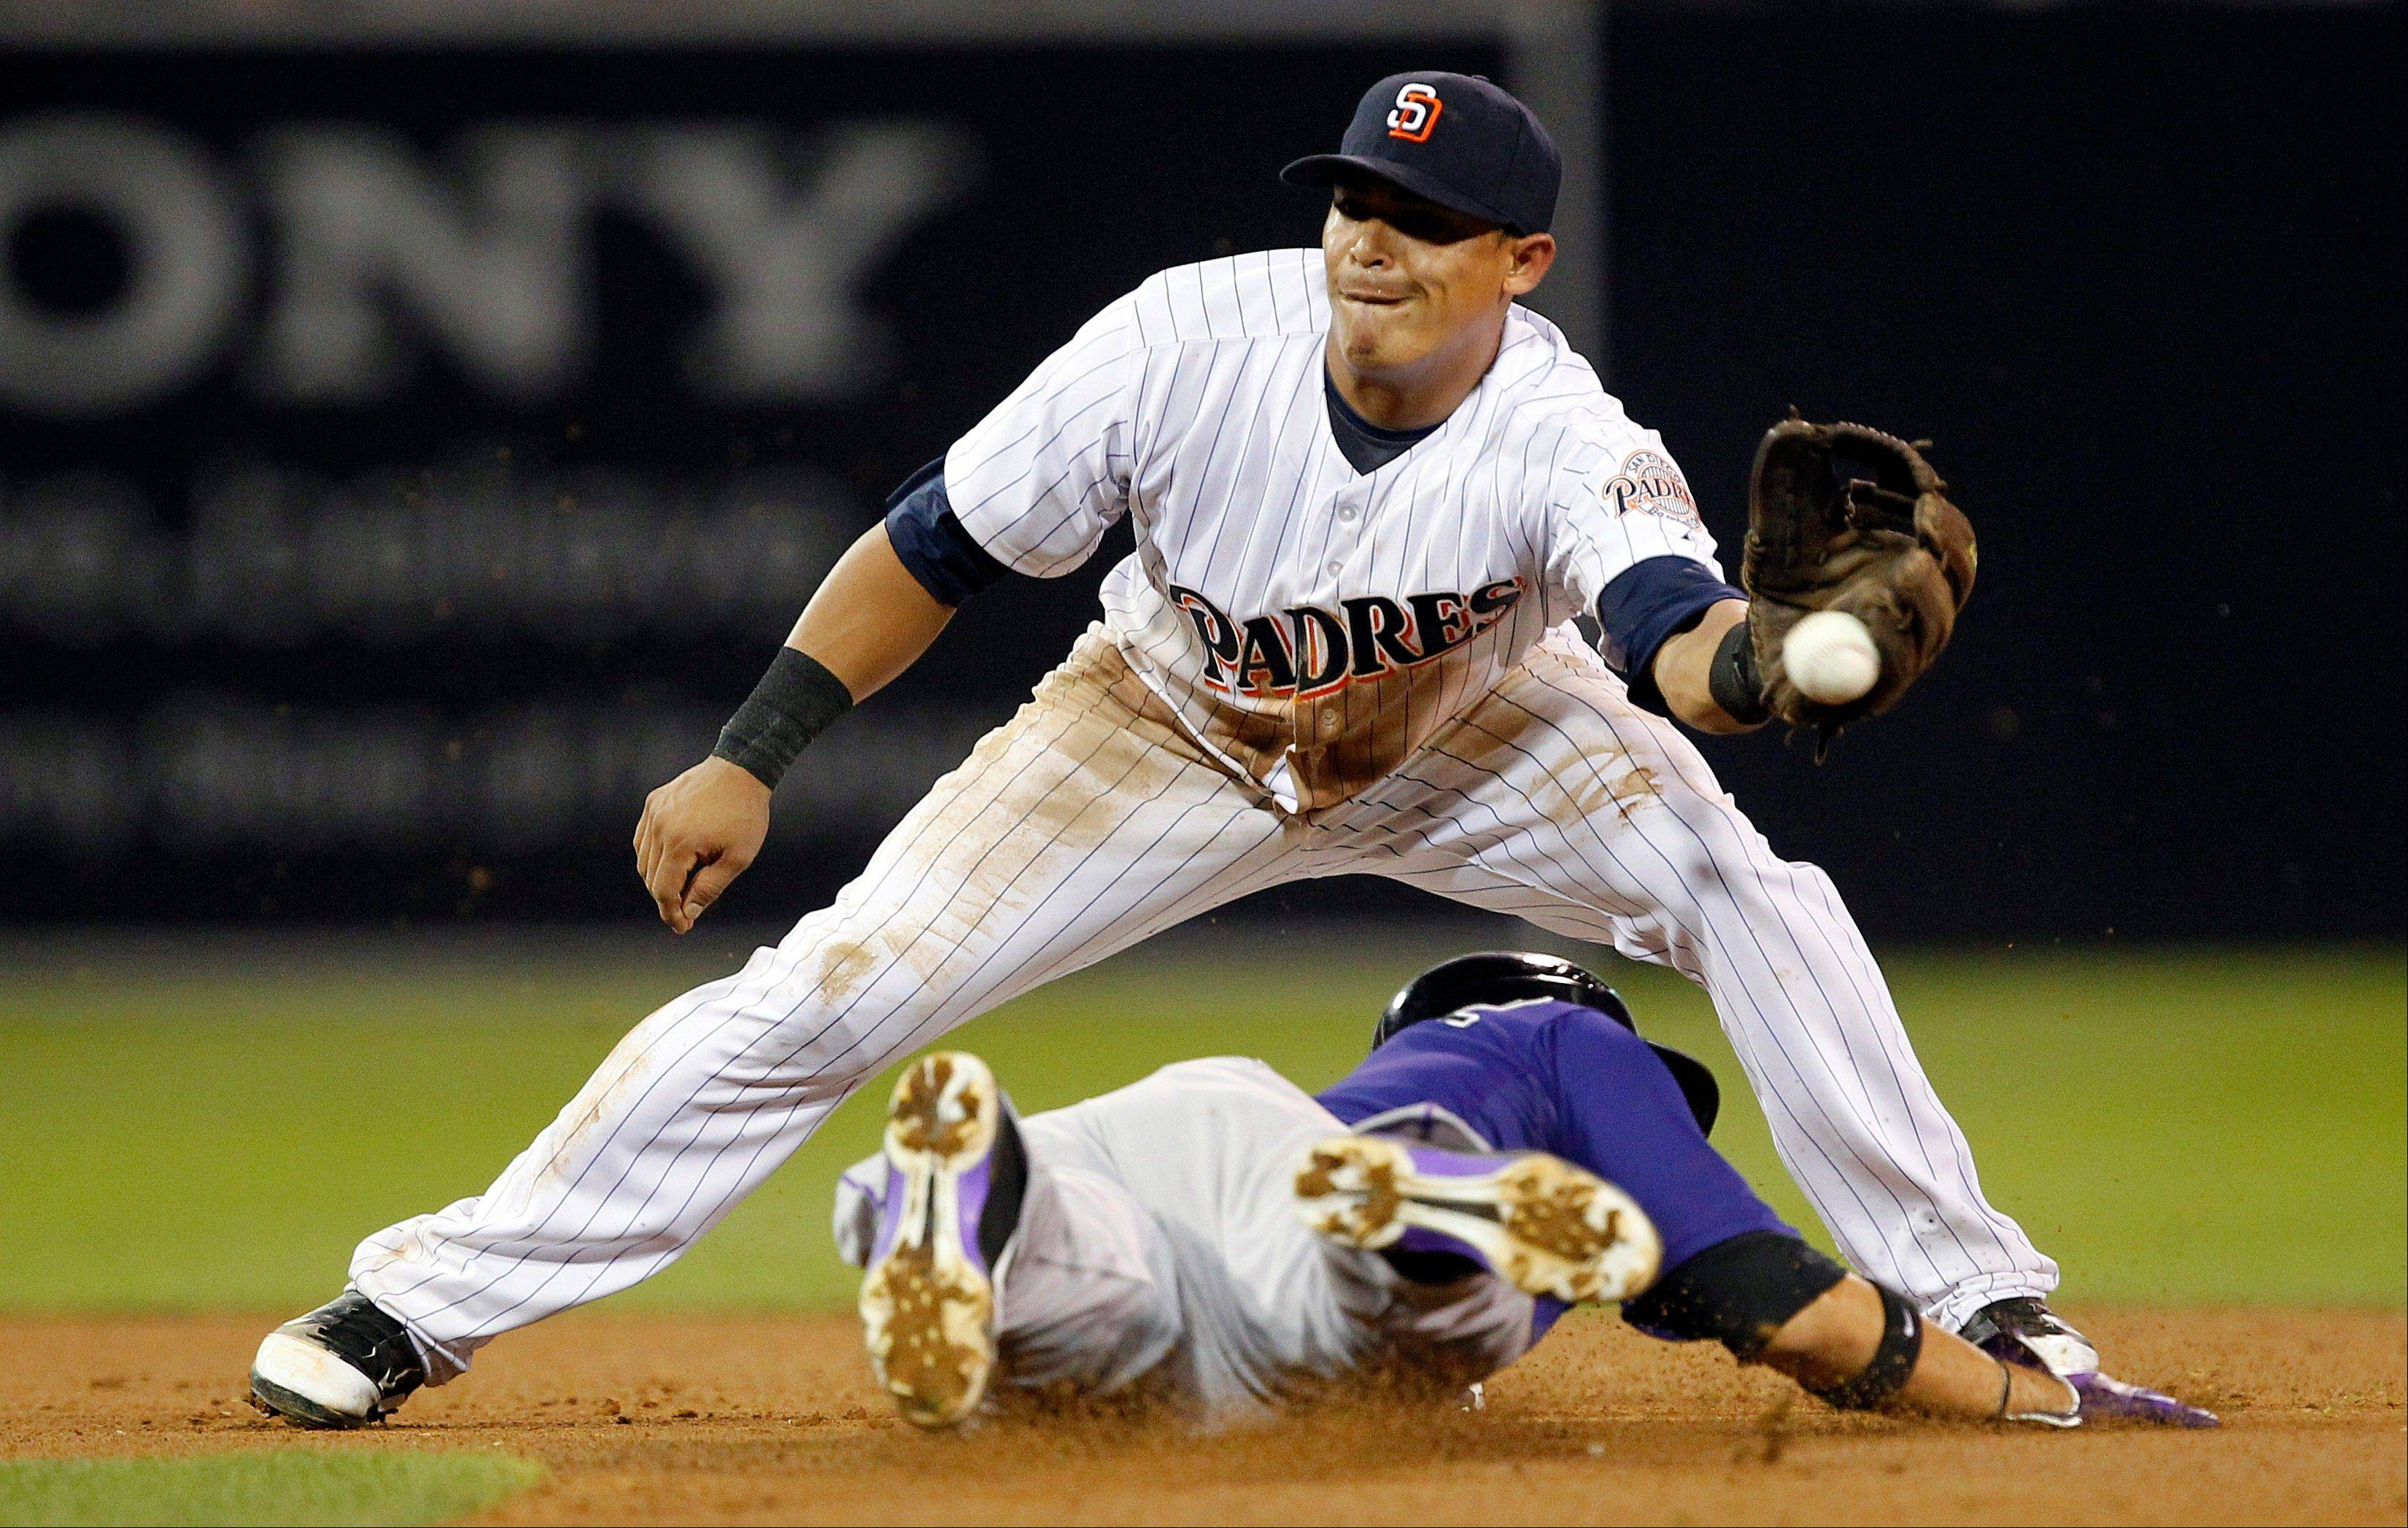 Padres shortstop Everth Cabrera can't handle the throw as the Rockies' Carlos Gonzalez steals second base during the seventh inning Friday in San Diego.